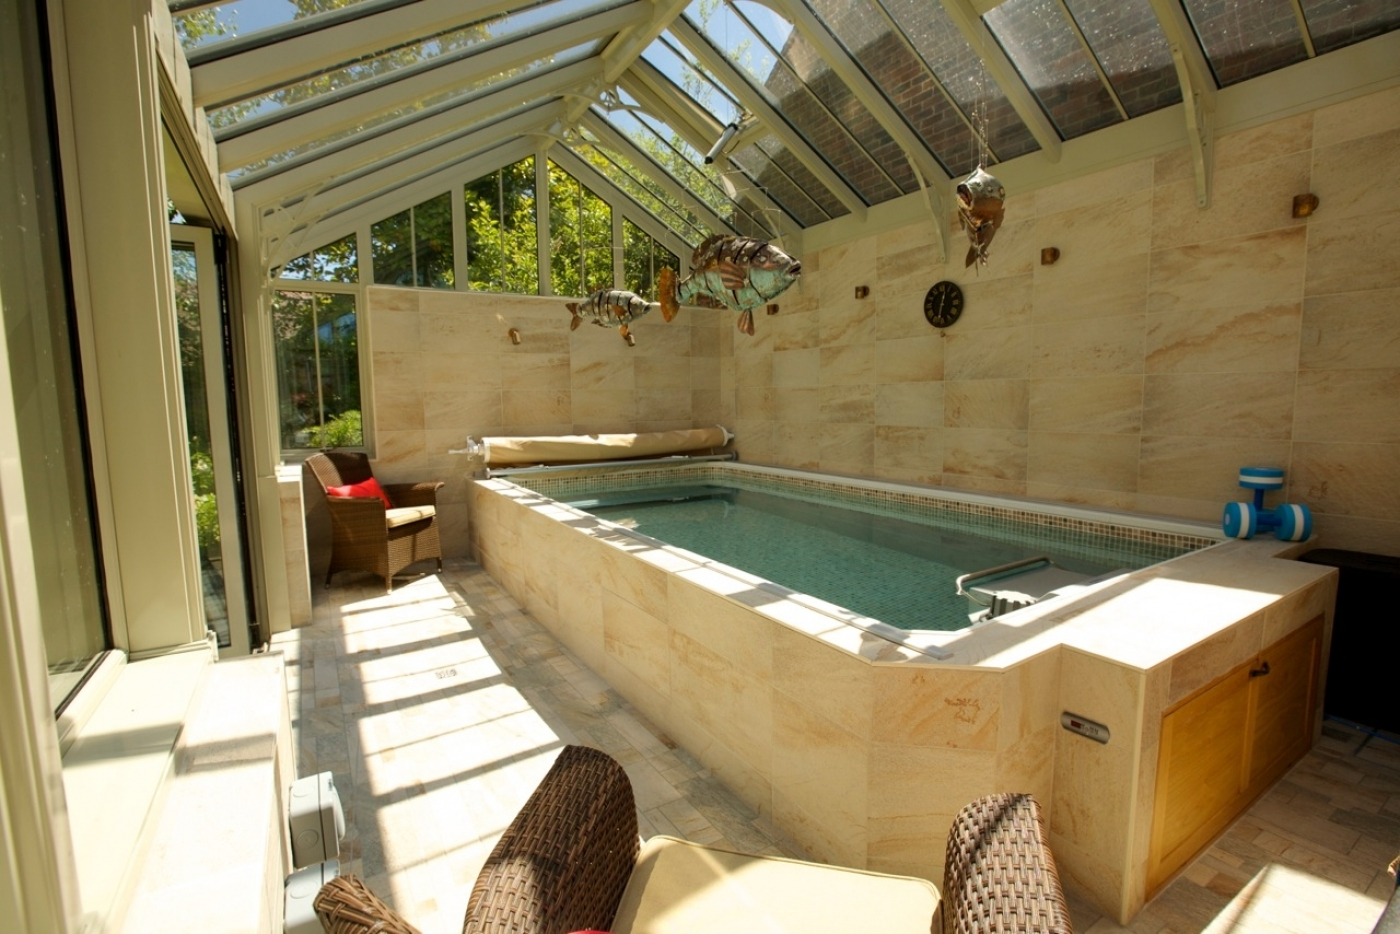 Jacuzzi Endless Pool Endless Pools Sussex Endless Pools Surrey Endless Pools Kent